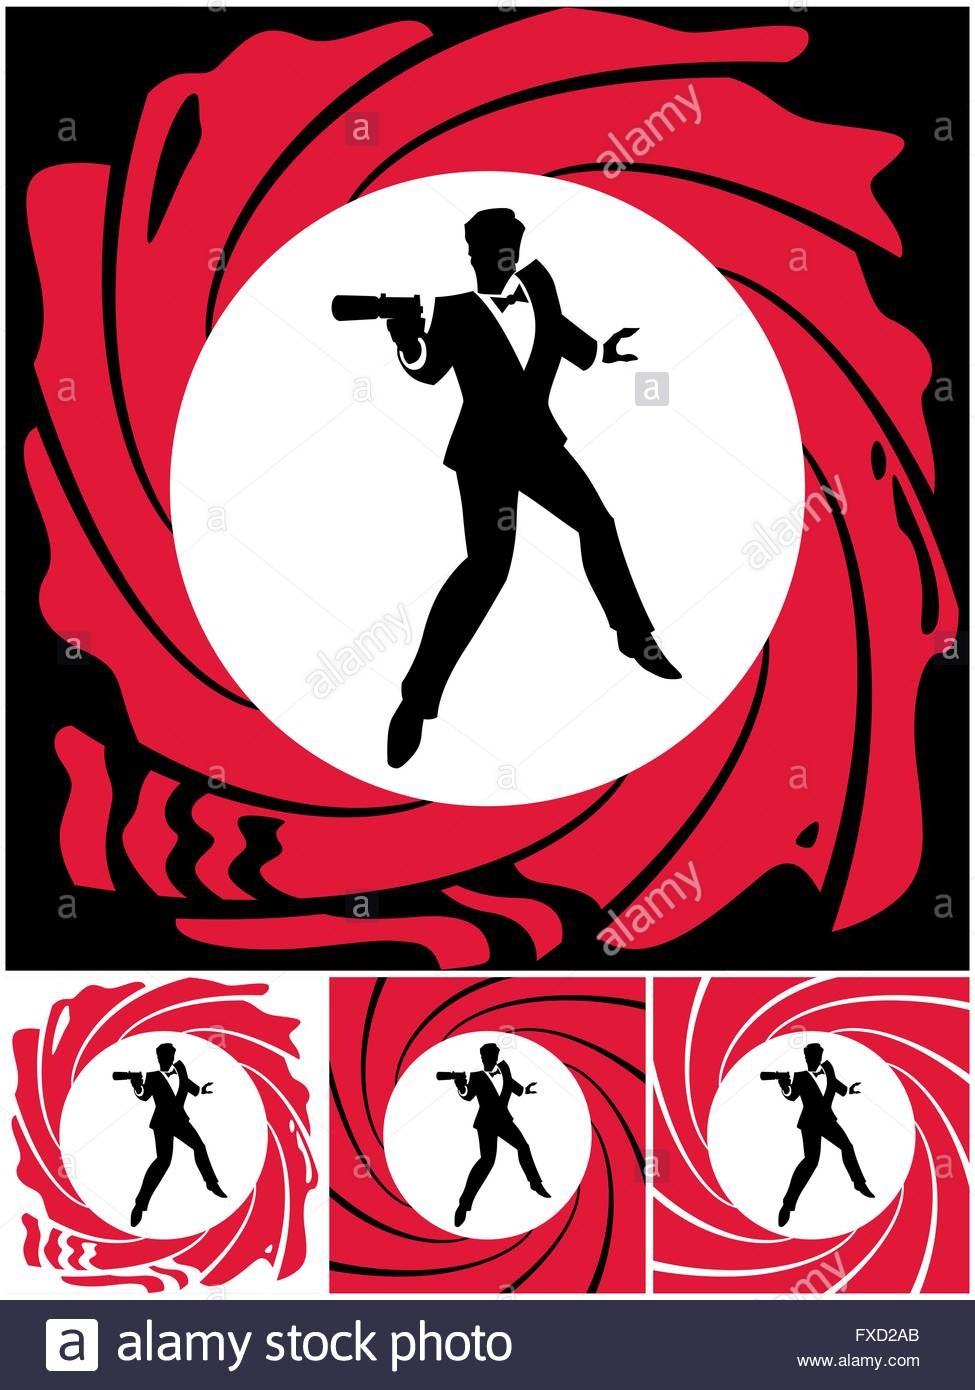 975x1390 Silhouette Of Secret Agent. No Transparency And Gradients Used